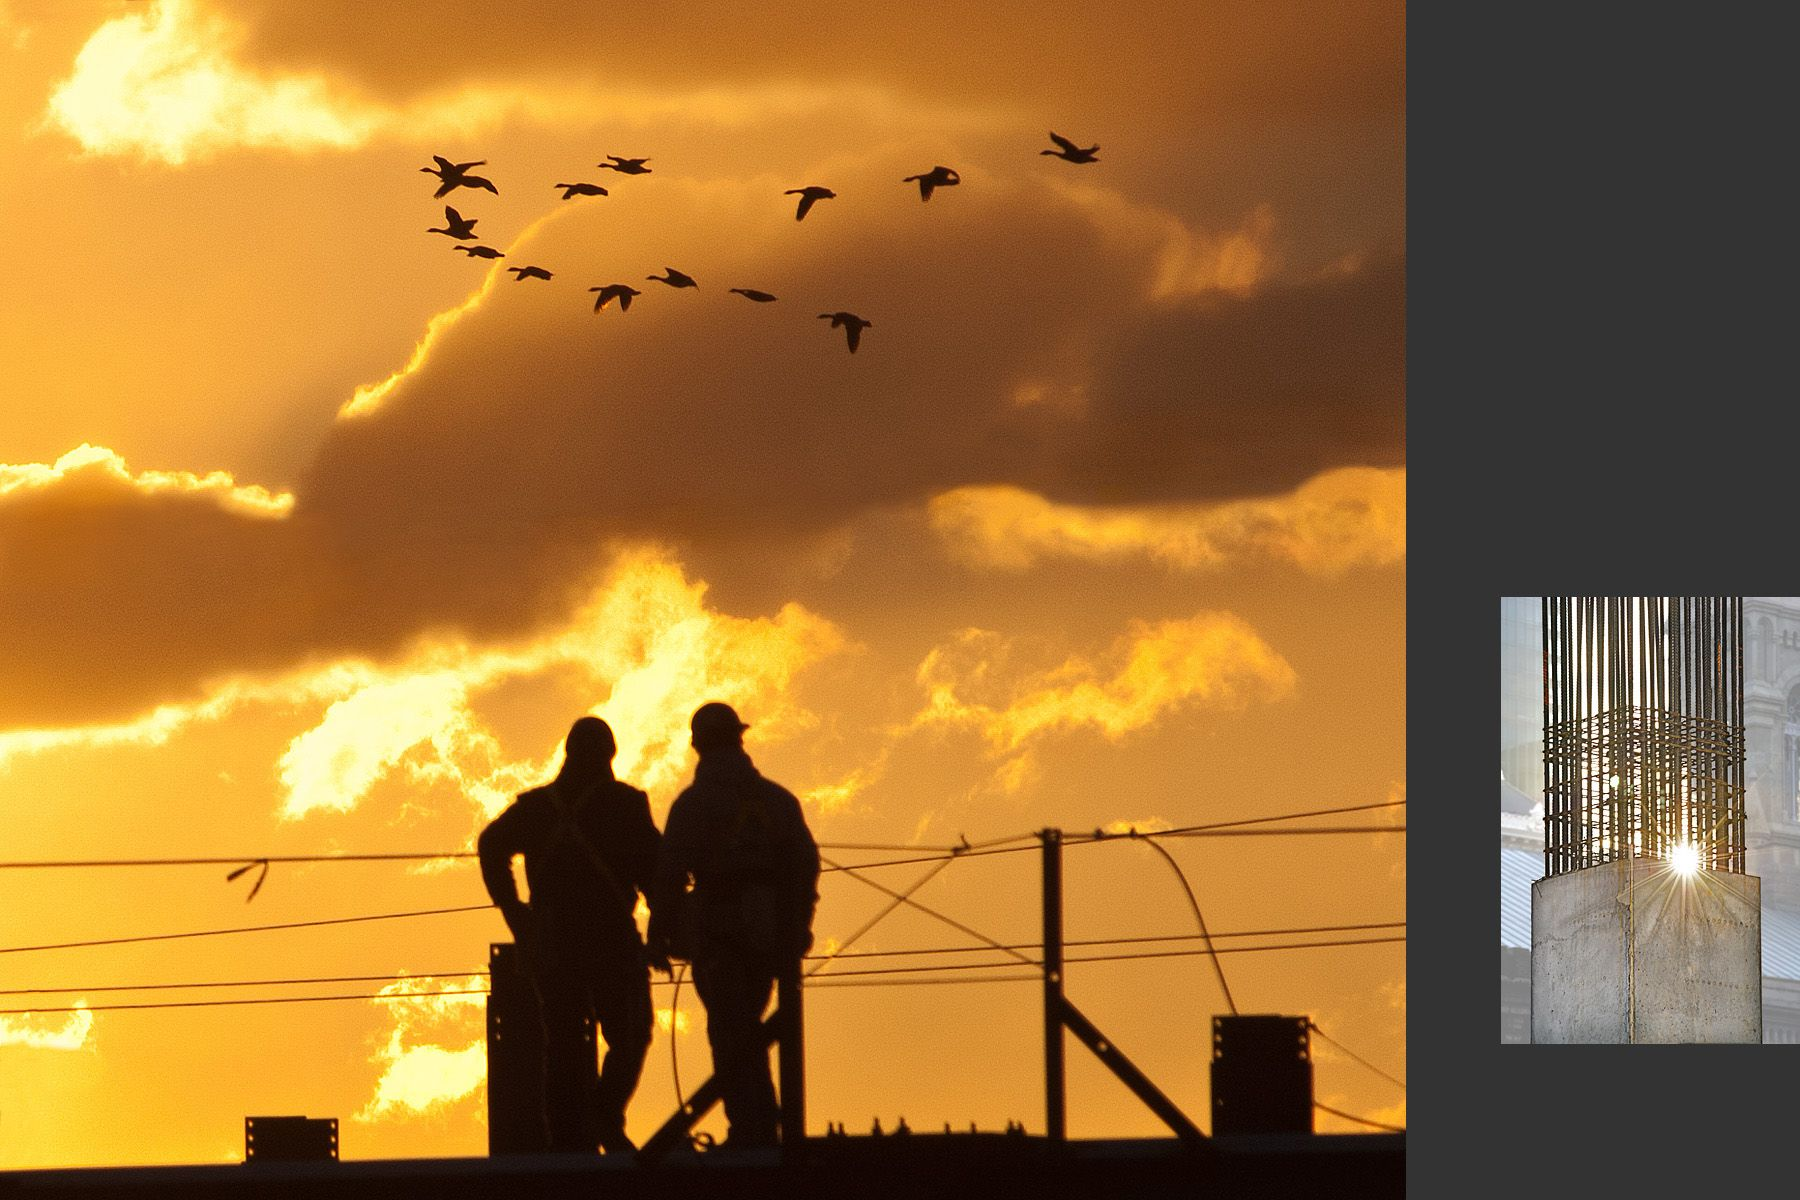 Construction workers pause to watch geese fly by at dawn;  Sunset over rebar